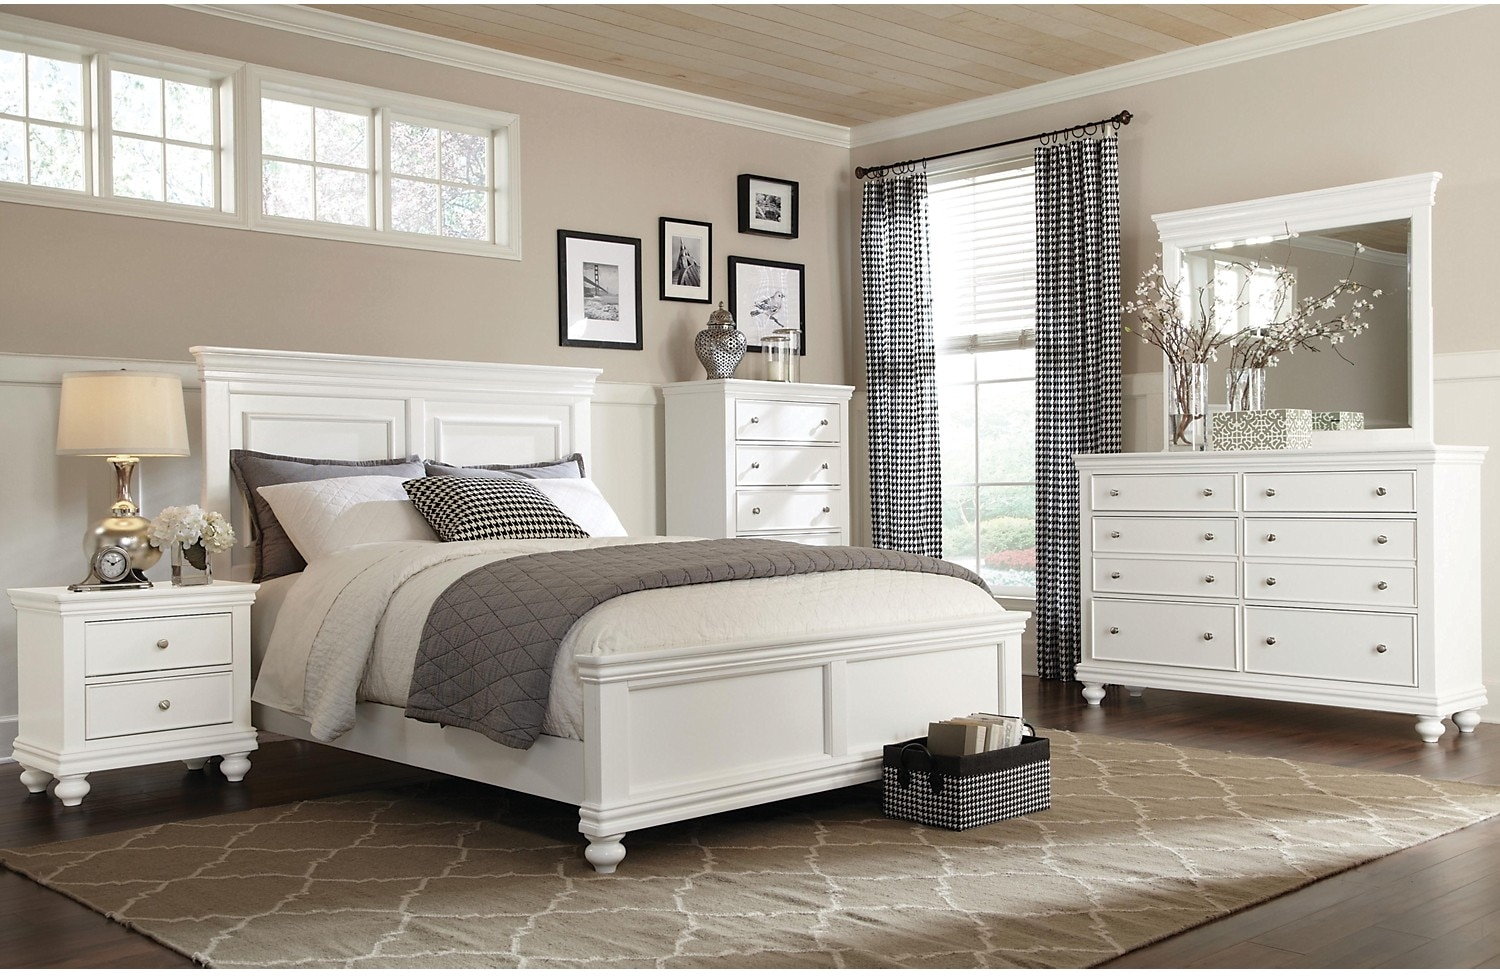 bridgeport 6 piece queen bedroom set white the brick 100 master bedroom ideas will make you feel rich